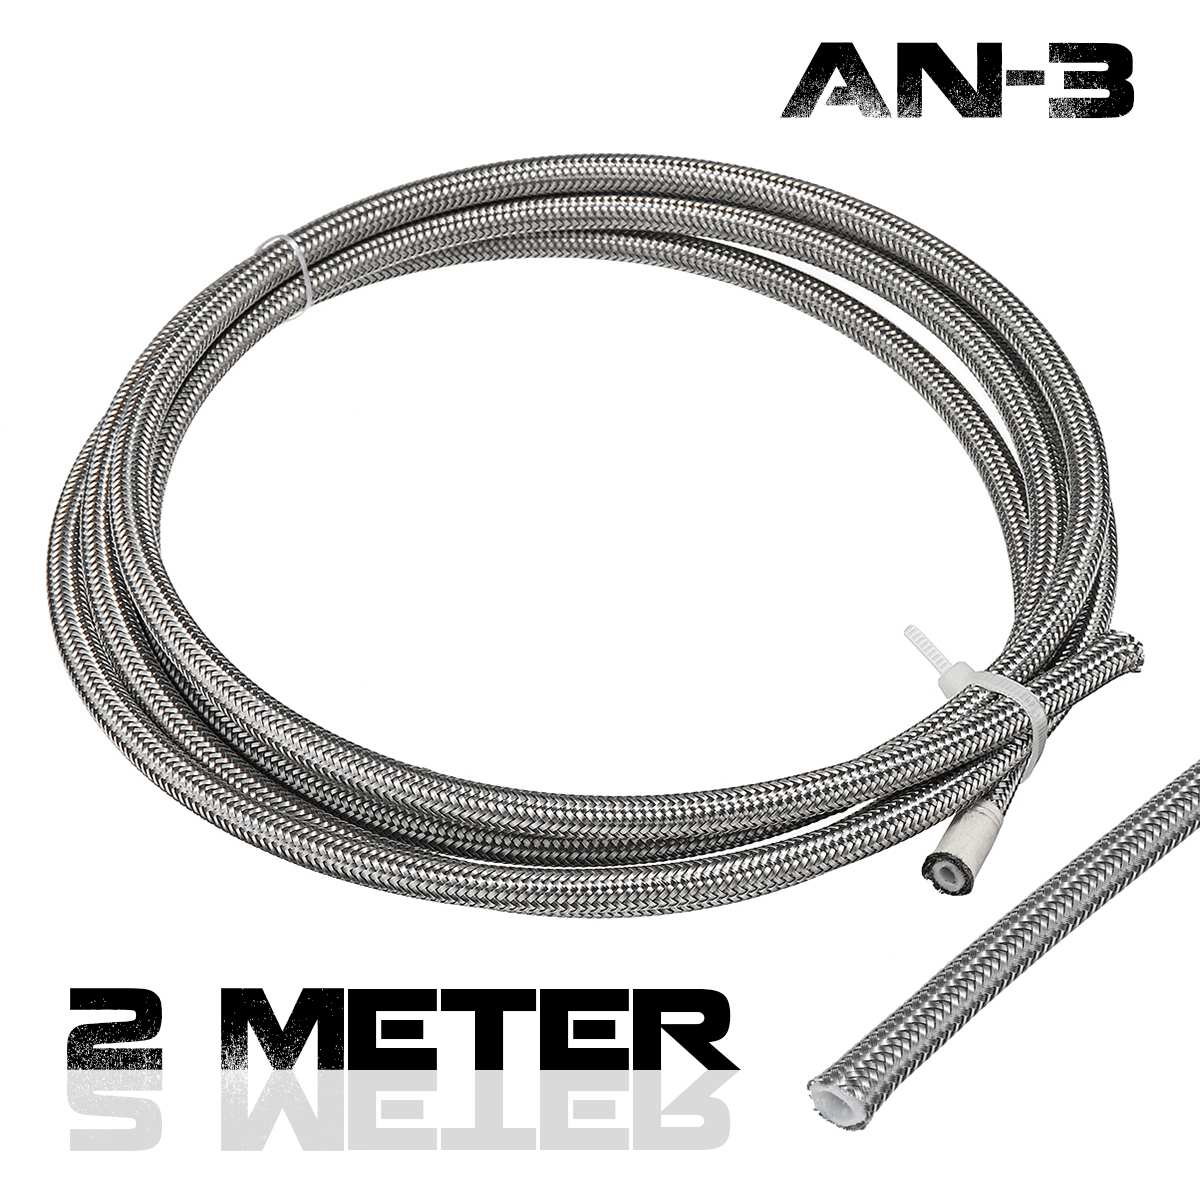 2m AN3 Braided Stainless Steel 3AN AN3 AN-3 Brake Hose PTEF Hydraulic Brake Fuel Line Hose2m AN3 Braided Stainless Steel 3AN AN3 AN-3 Brake Hose PTEF Hydraulic Brake Fuel Line Hose